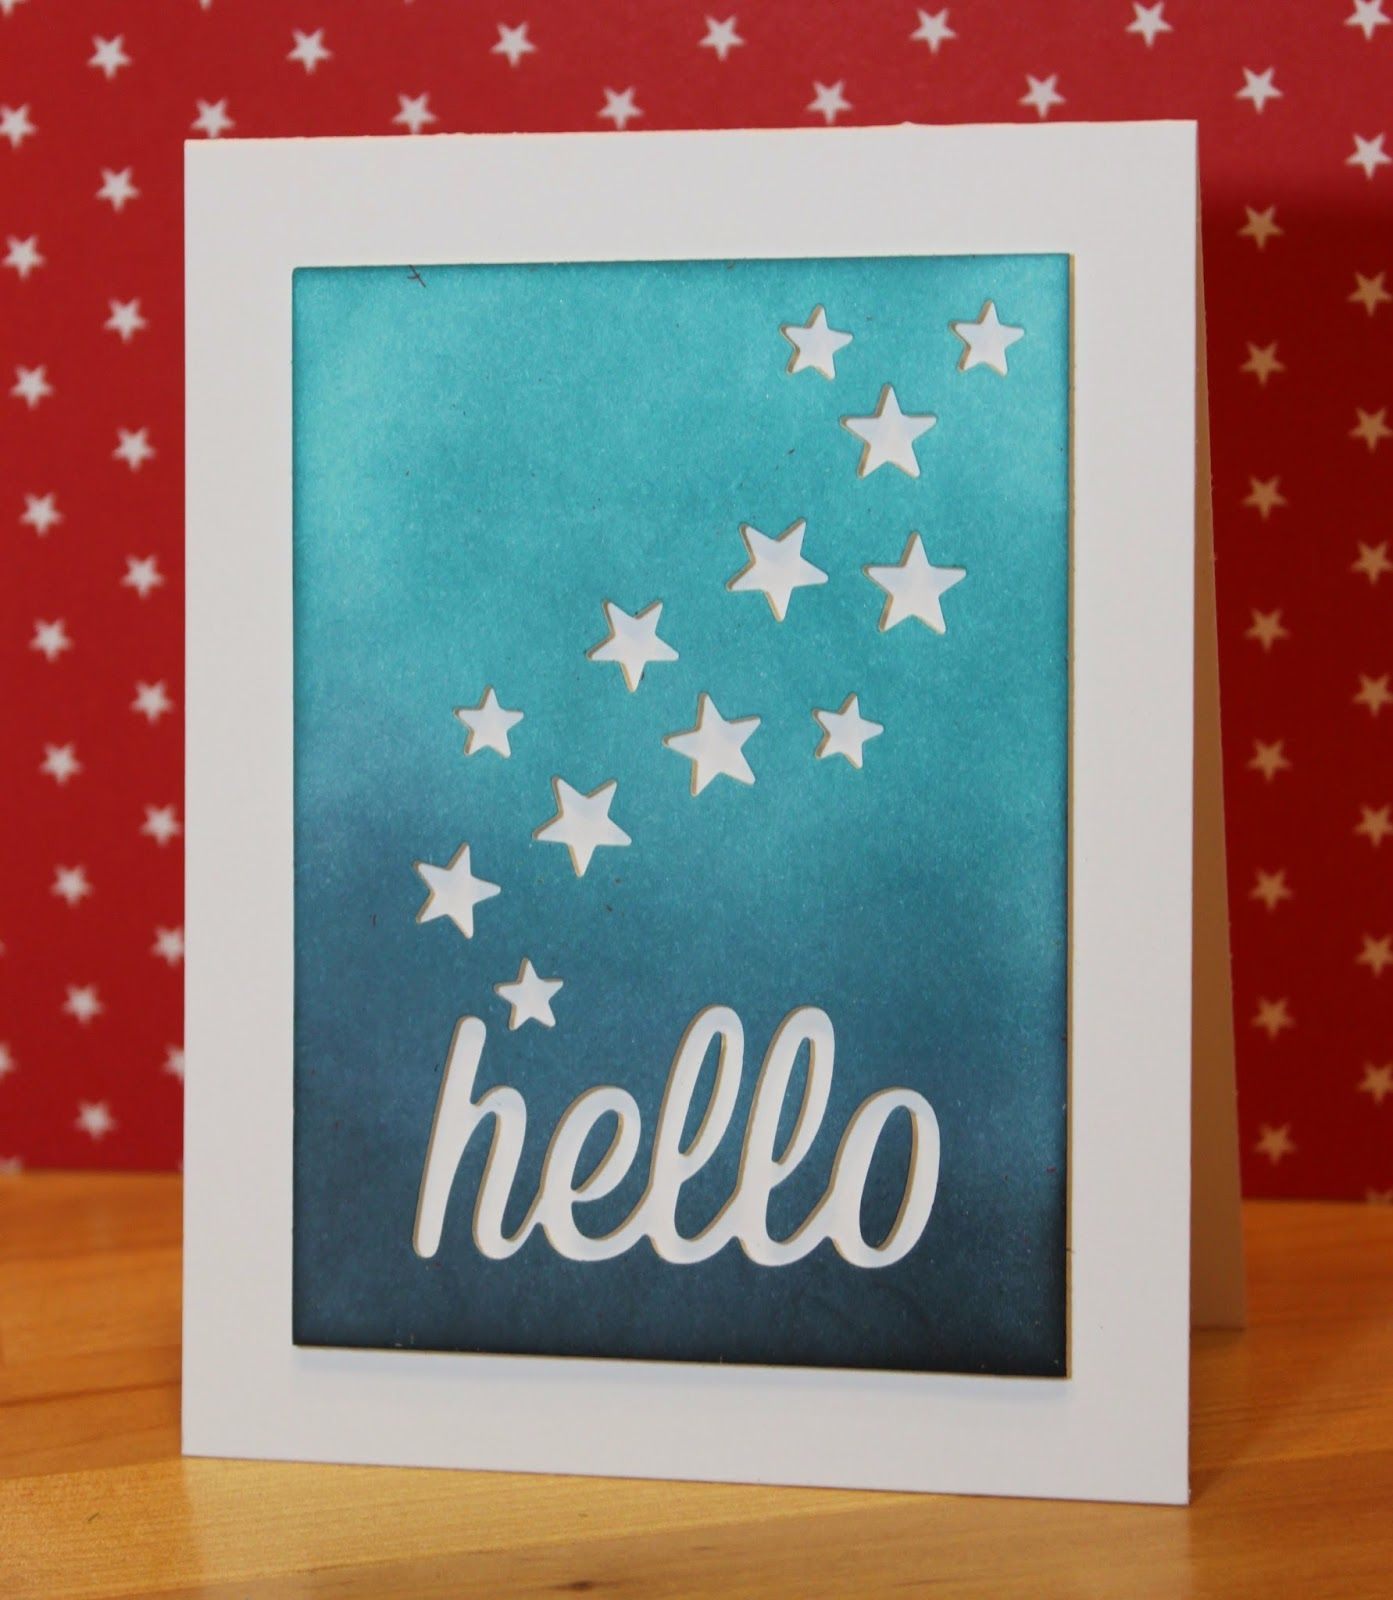 Handmade Greeting Card From Whats Next Sponged Panel With